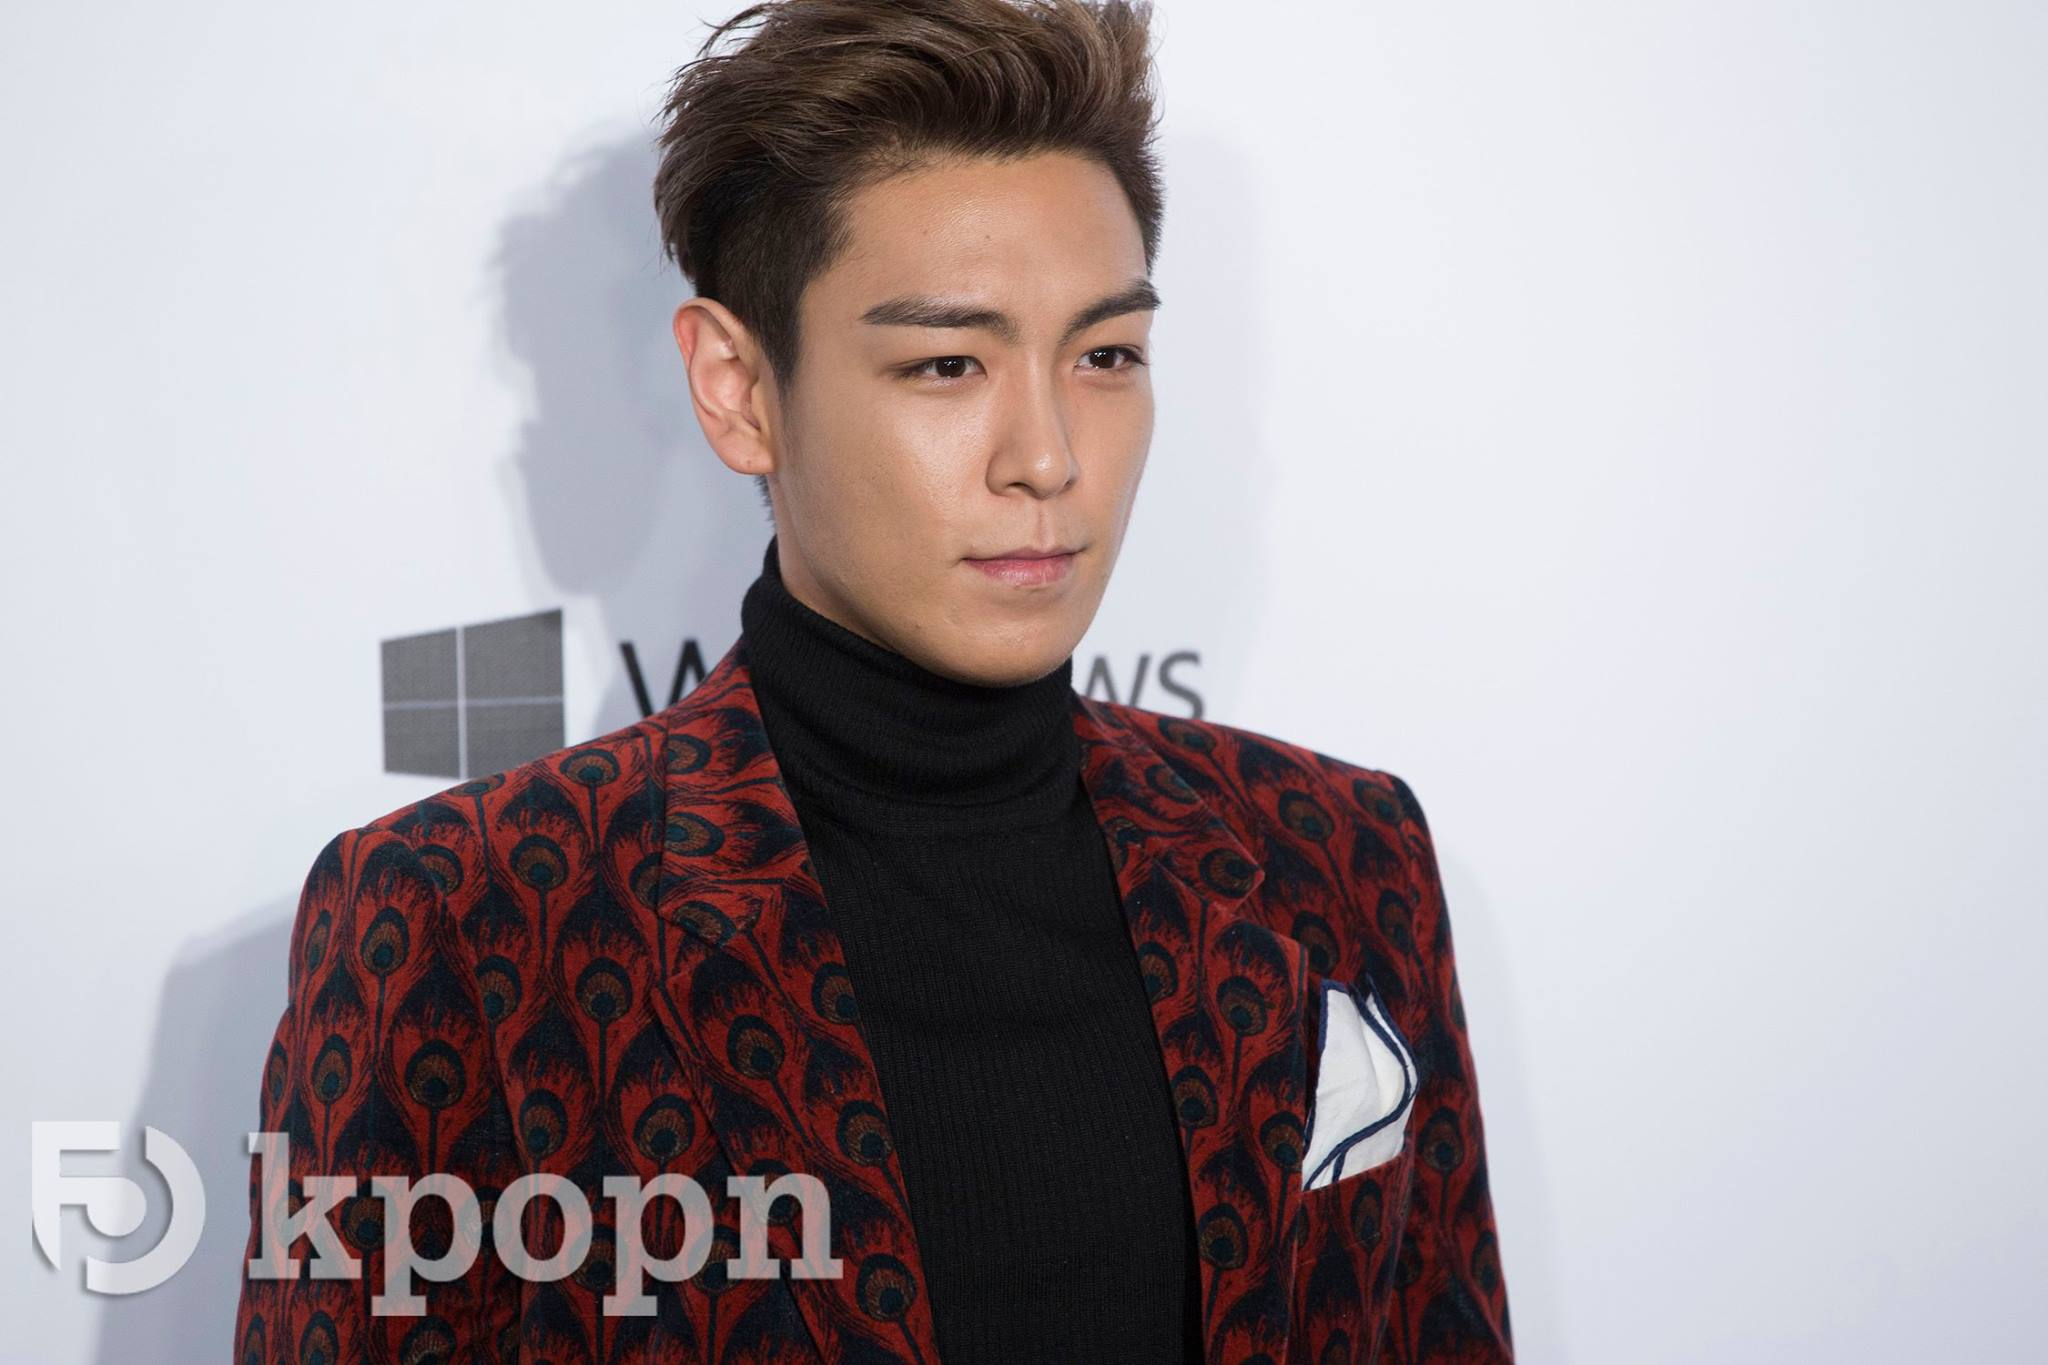 TOP amfAR Hong Kong by KPopcn 2015-03-14 004.jpg